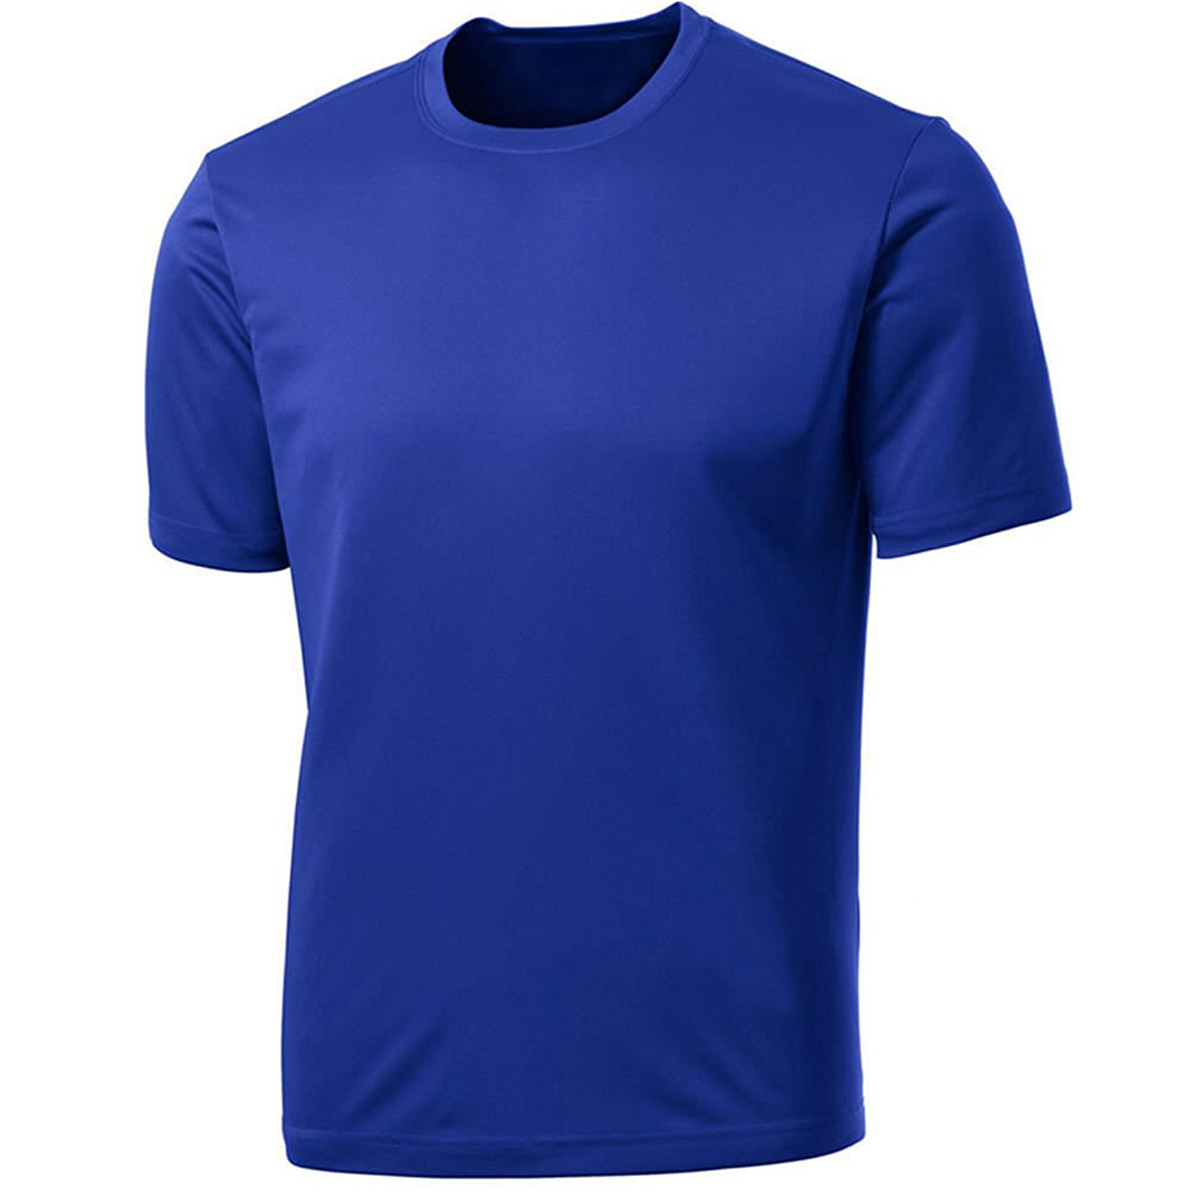 Since wicking clothing does not actually stop you from sweating, you must be aware that there is a point where wicking clothing may feel just as saturated as cotton, perhaps when traveling in the deep humidity of places like Malaysia, Guatemala or even Florida. It will, however, tend to dry quicker than the cotton equivalent.